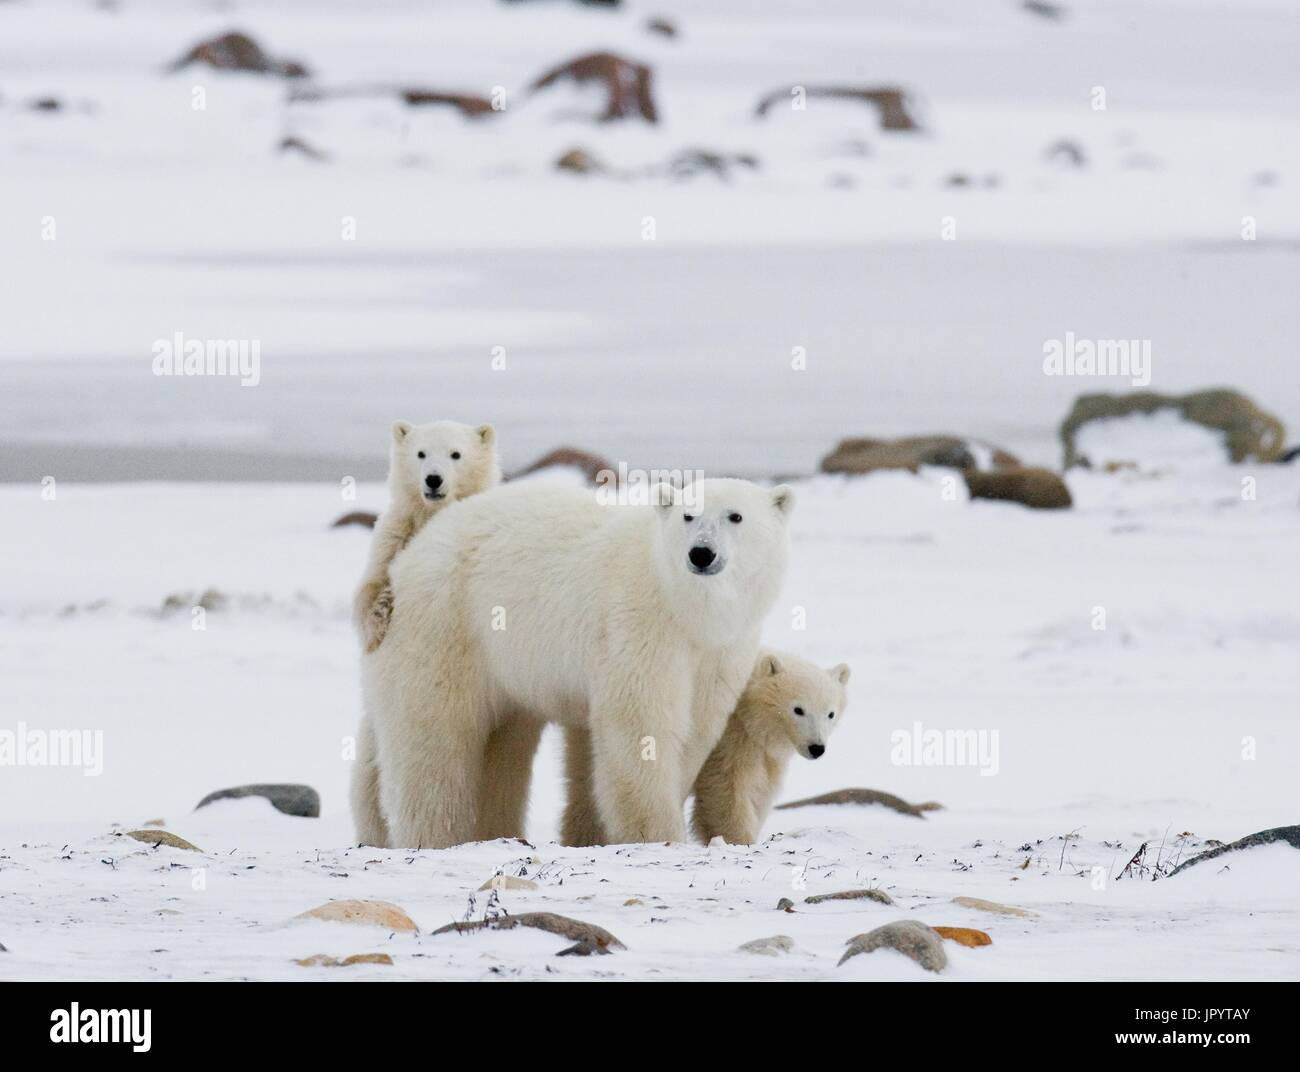 Polar bear with a cubs in the tundra. Canada. - Stock Image